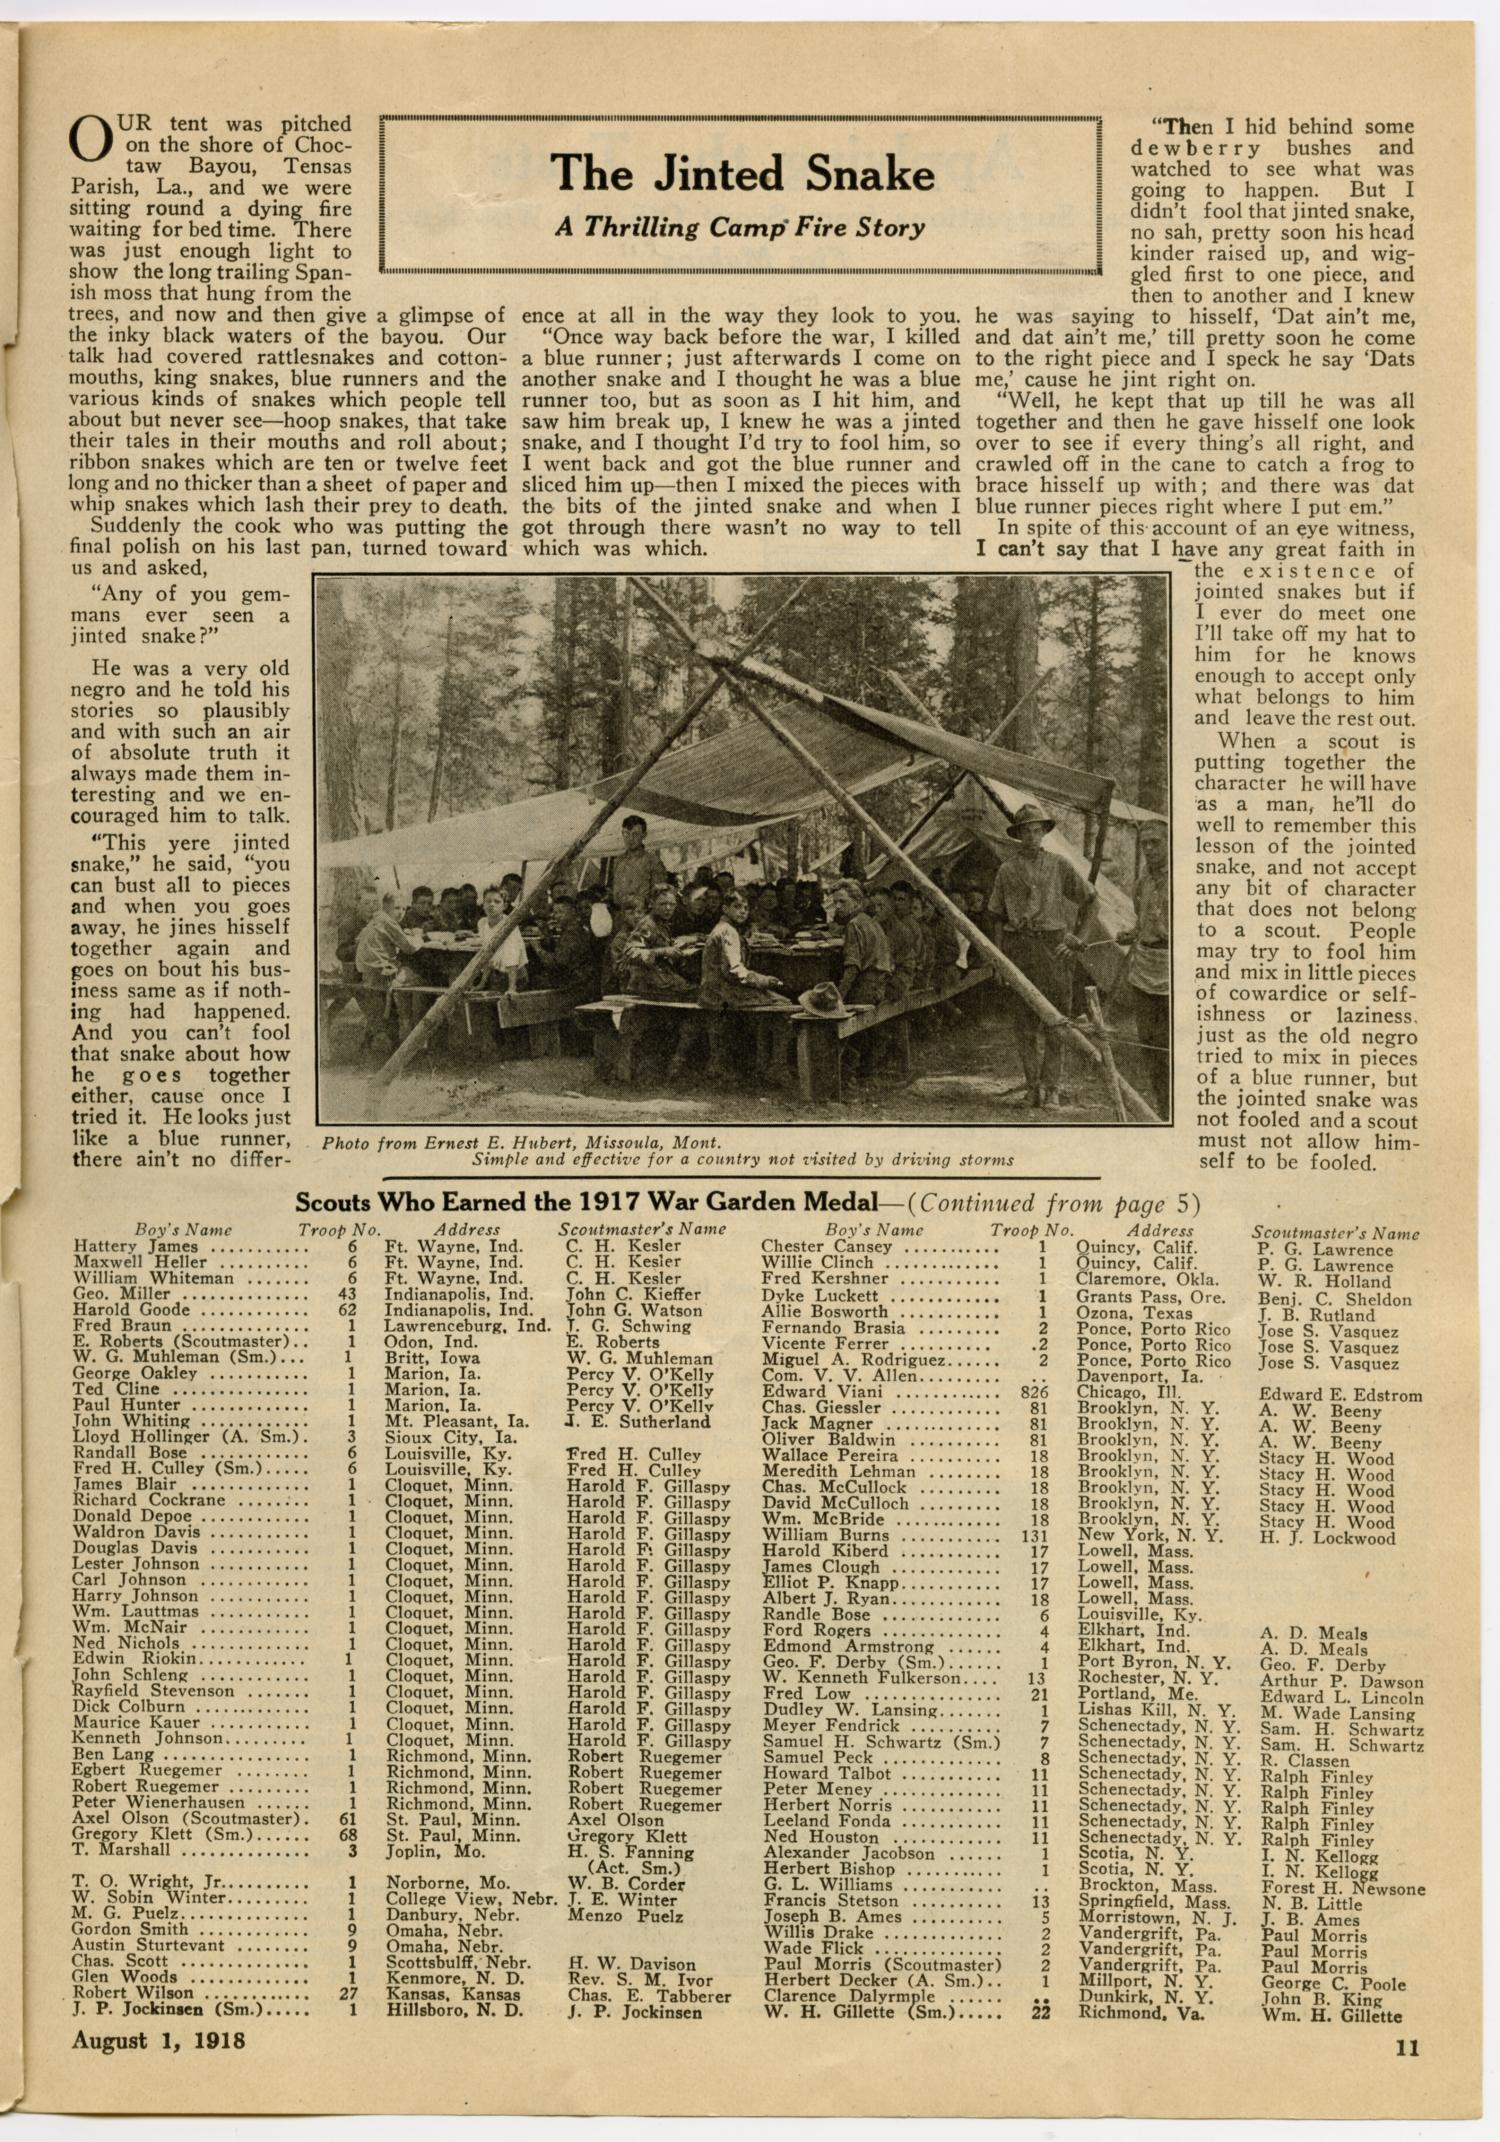 Scouting, Volume 6, Number 15, August 1, 1918 - Page 11